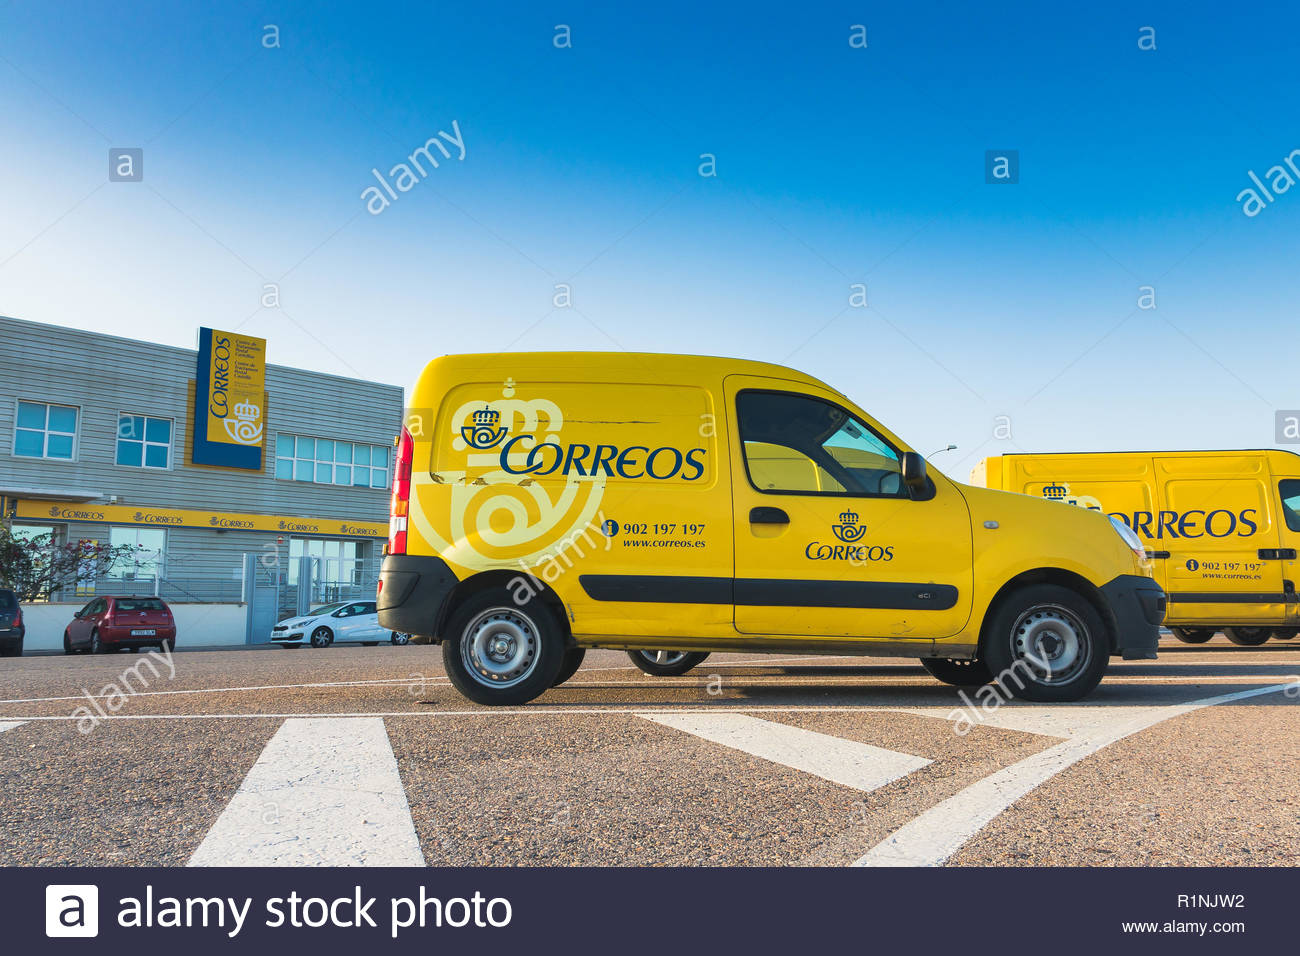 CASTELLON, SPAIN - SEPTEMBER 2018 - Delivery vans of the postal transport agency 'Correos'. - Stock Image